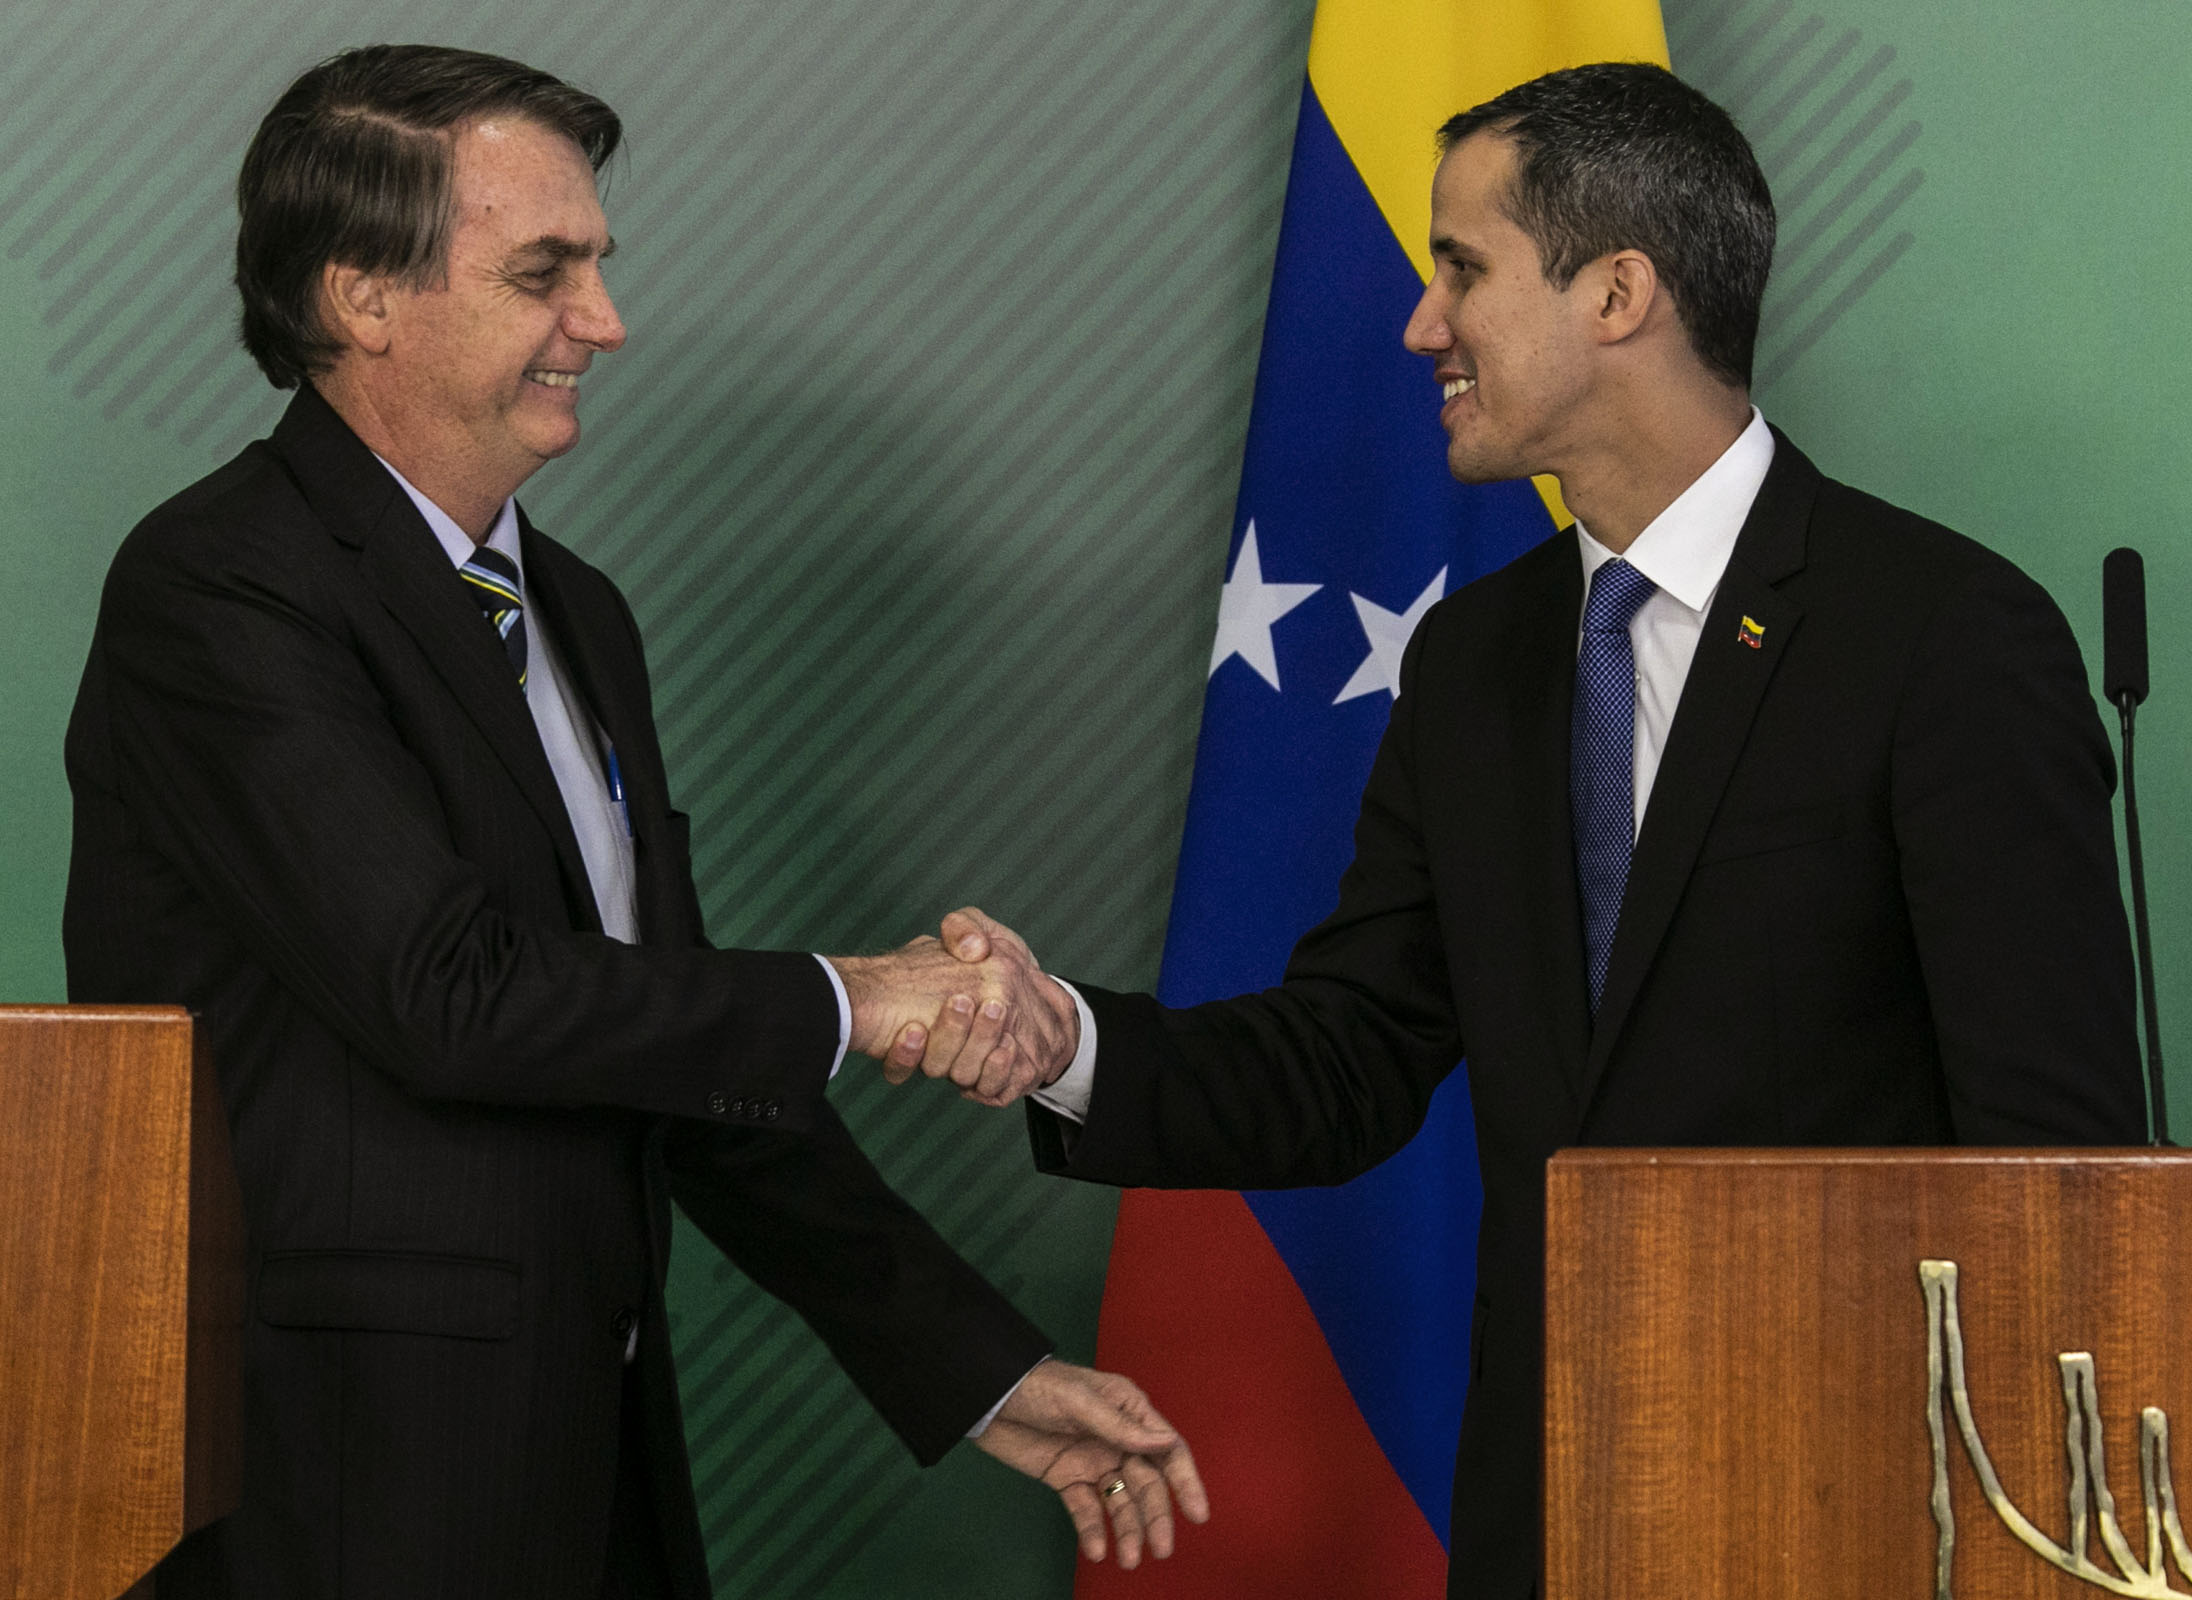 Brazil's President Jair Bolsonaro (L) and Venezuelan opposition leader and self-declared acting president Juan Guaido shake hands during a joint press conference after holding a meeting at Planalto palace in Brasilia on February 28, 2019. (SERGIO LIMA/AFP/Getty Images)